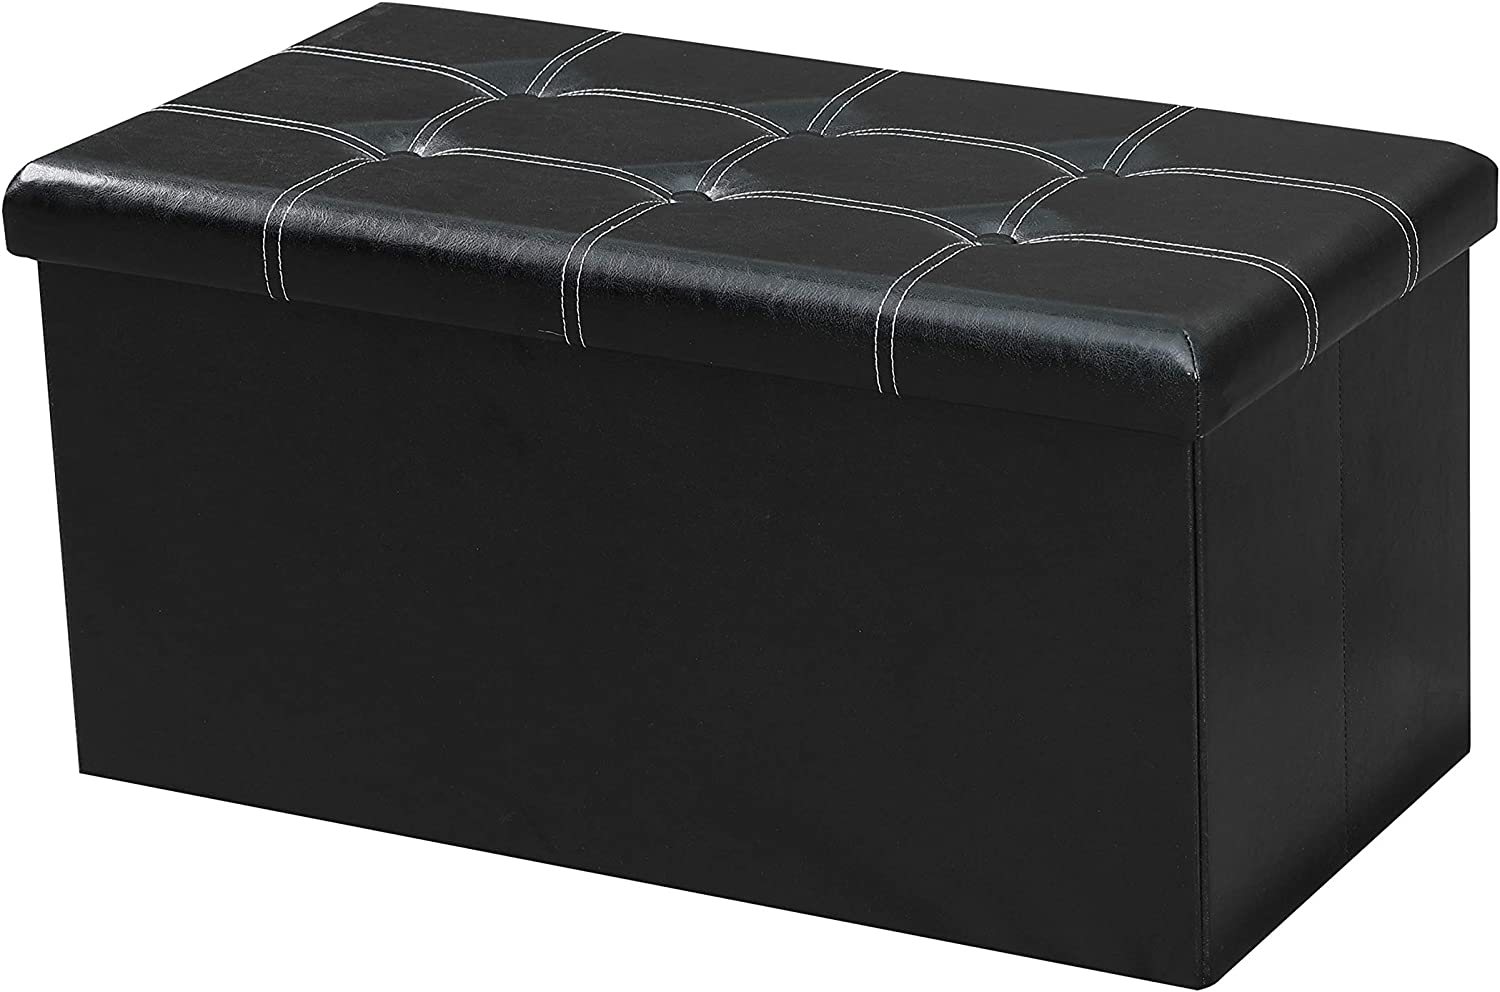 Amazon Com Lokatse Home 30 Inches Folding Storage Ottoman Bench Footrest Seat Chest Coffee Table Toy Box 30 X15 X15 Black Faux Leather Furniture Decor